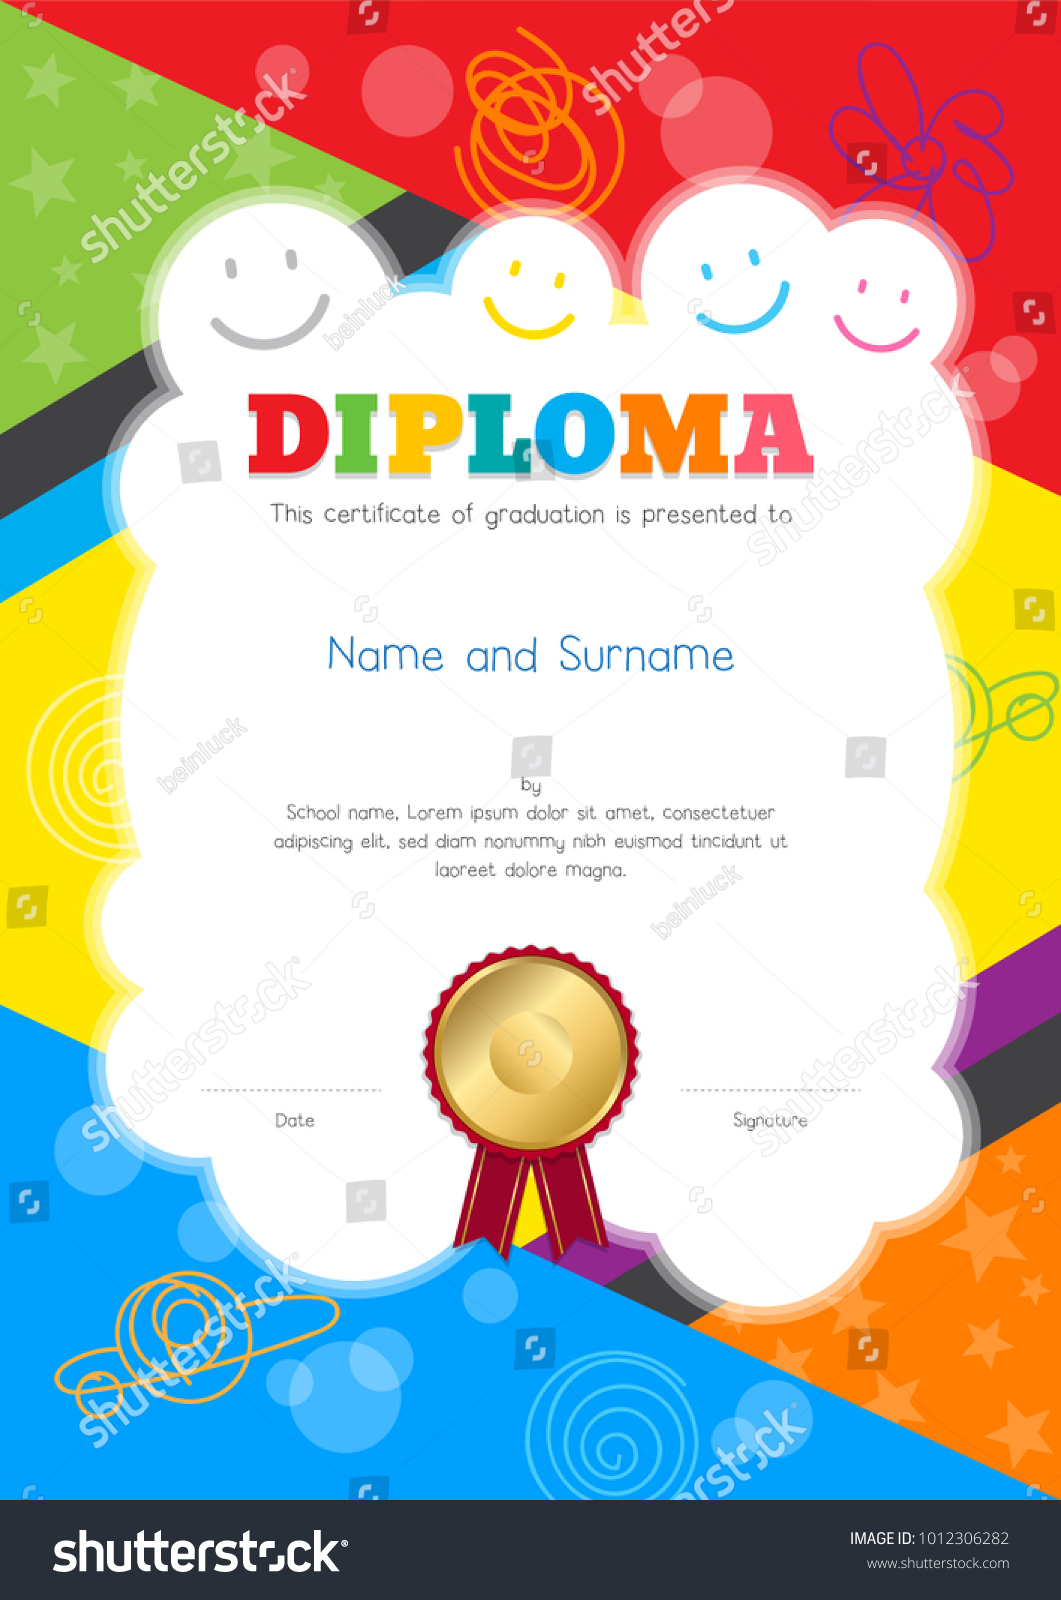 Kids summer camp diploma or cash payment template template with colorful and hand drawing background border 1012306282 kids diploma certificate template colorful hand 1012306282 kids summer camp yelopaper Image collections